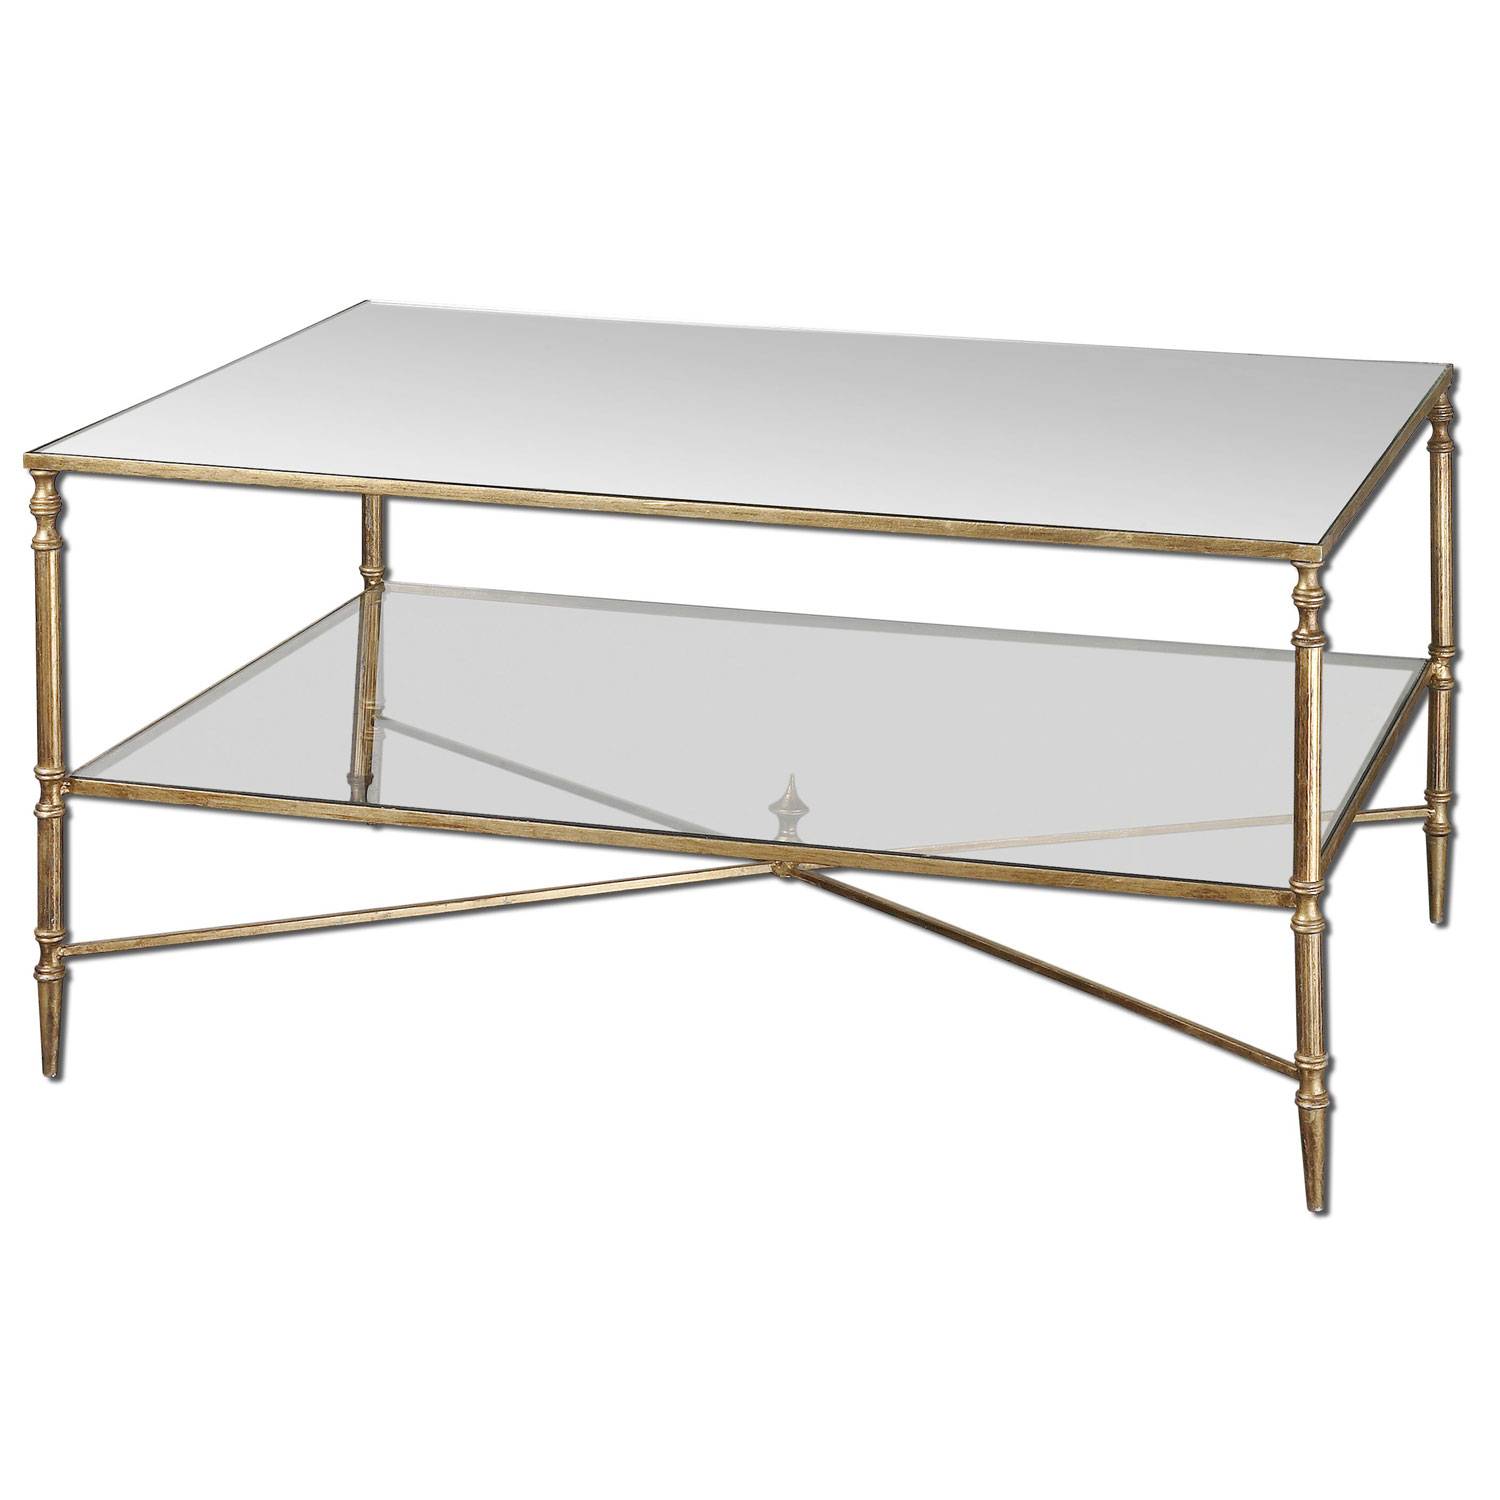 uttermost gold henzler coffee table bellacor mixed material accent hover zoom marble and chrome wrought iron patio trestle bench legs ikea door bar silver bedroom lamps ashley